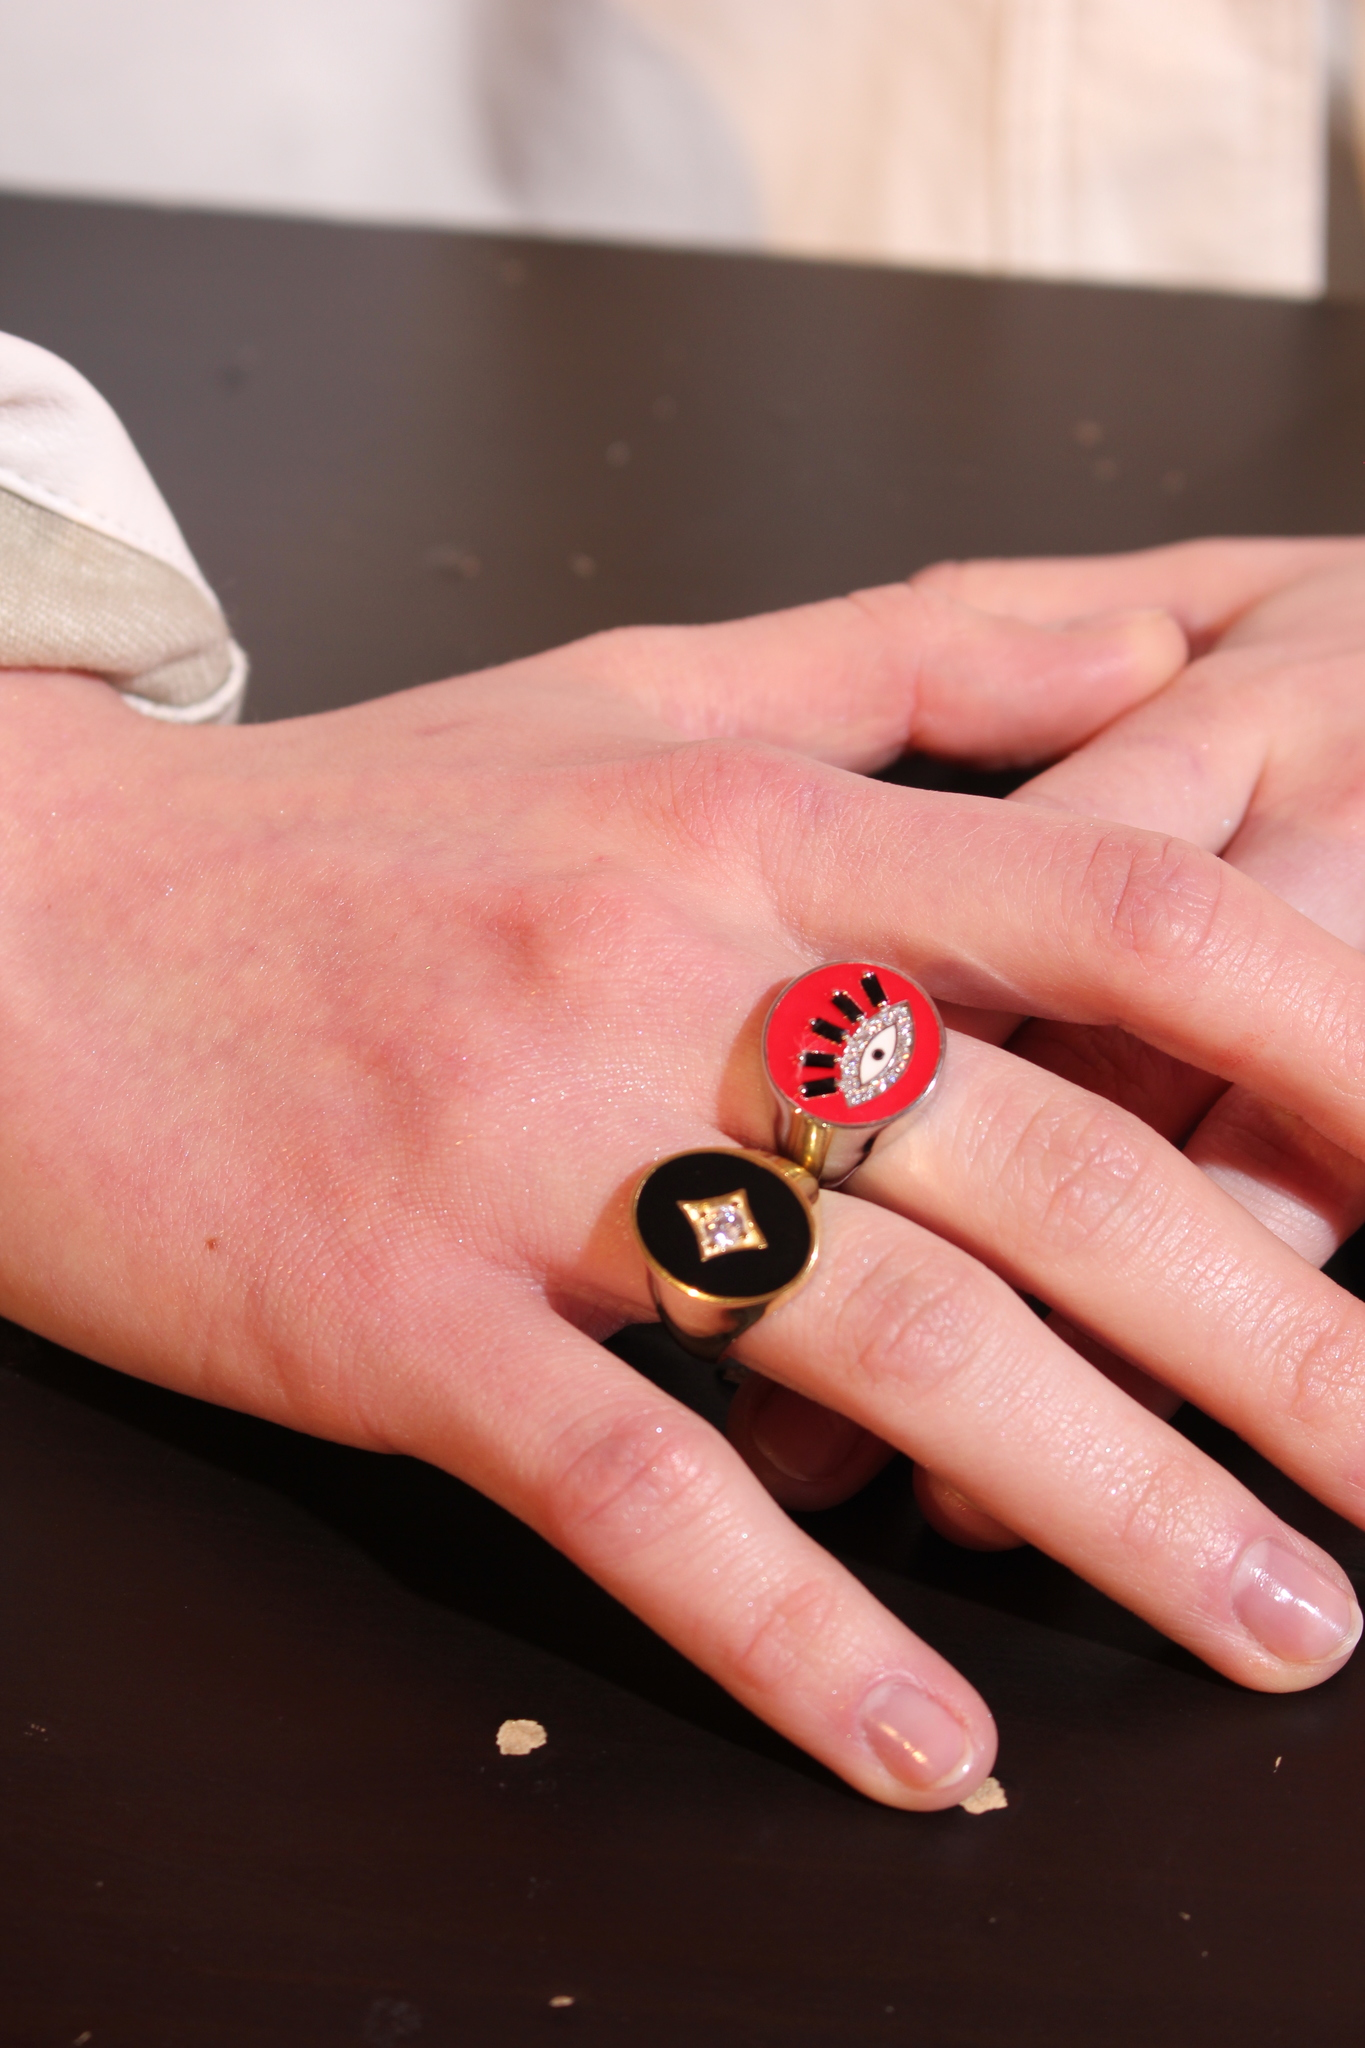 The Eye signet ring in silver with red enamel